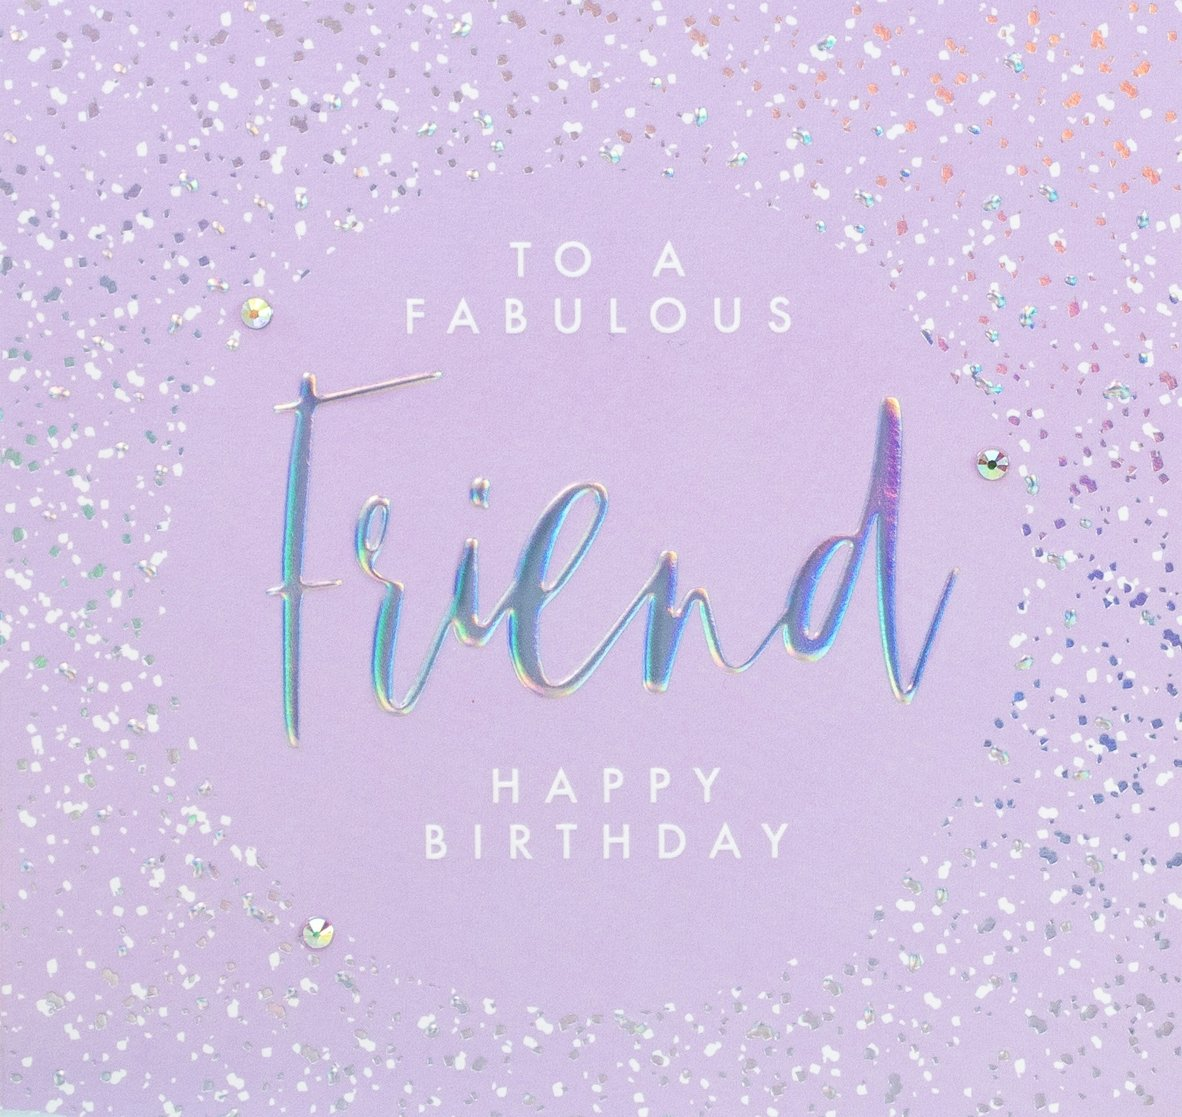 Aurora - Fabulous Friend Birthday Card |More Than Just A Gift